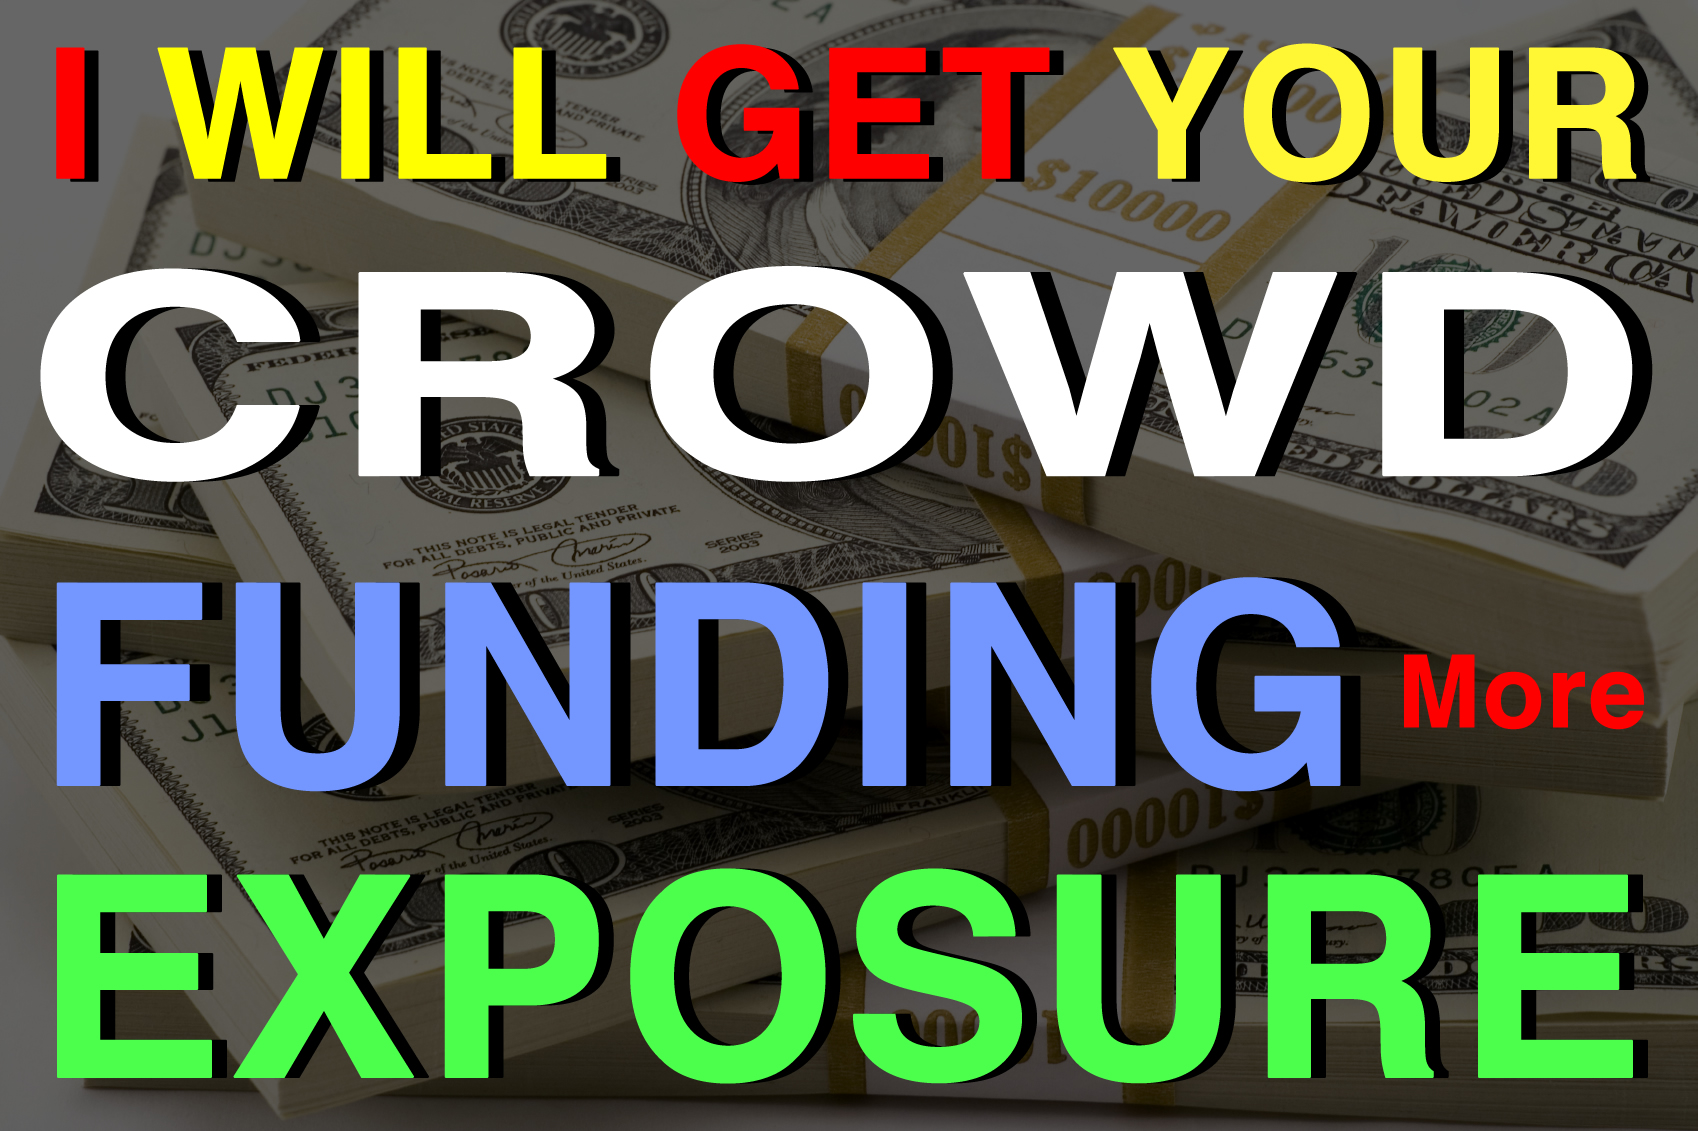 get your CrowdFunding more EXPOSURE for